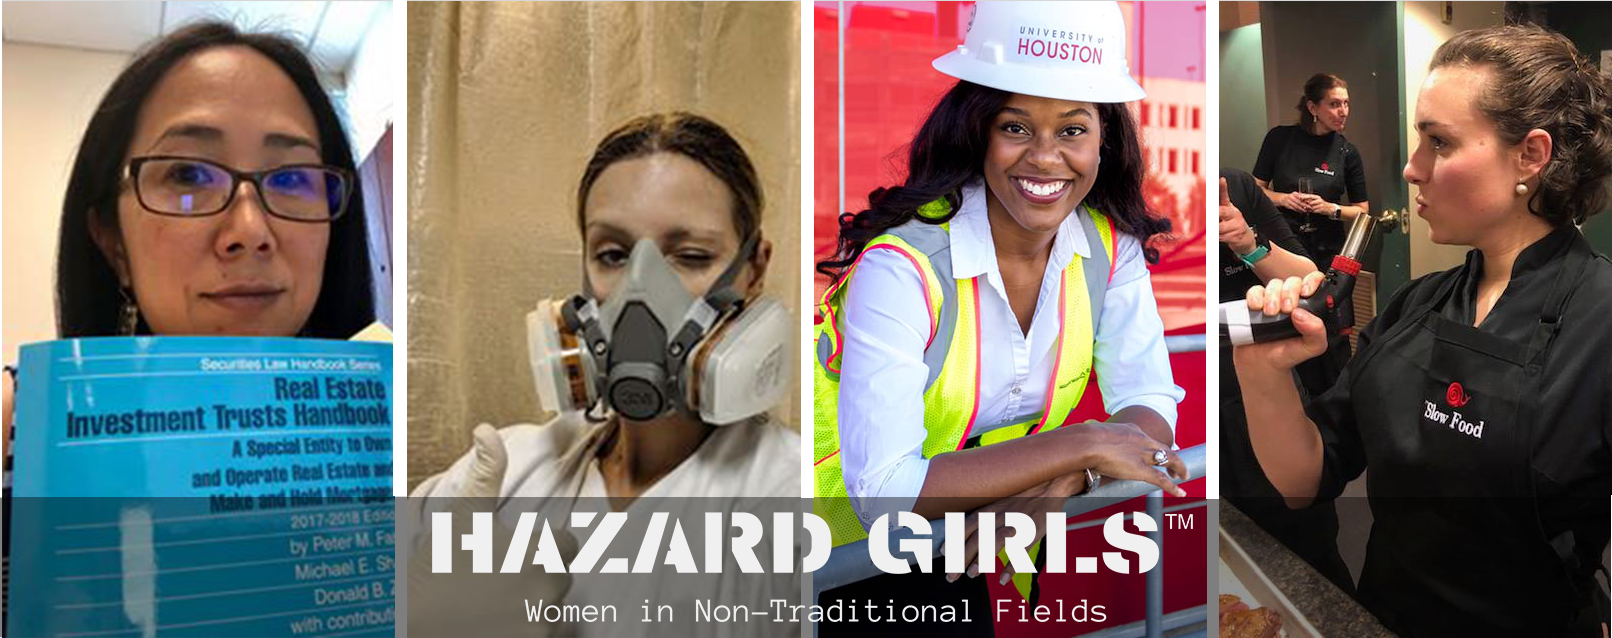 Hazard Girls community on Facebook Supporting women in non-traditional fields